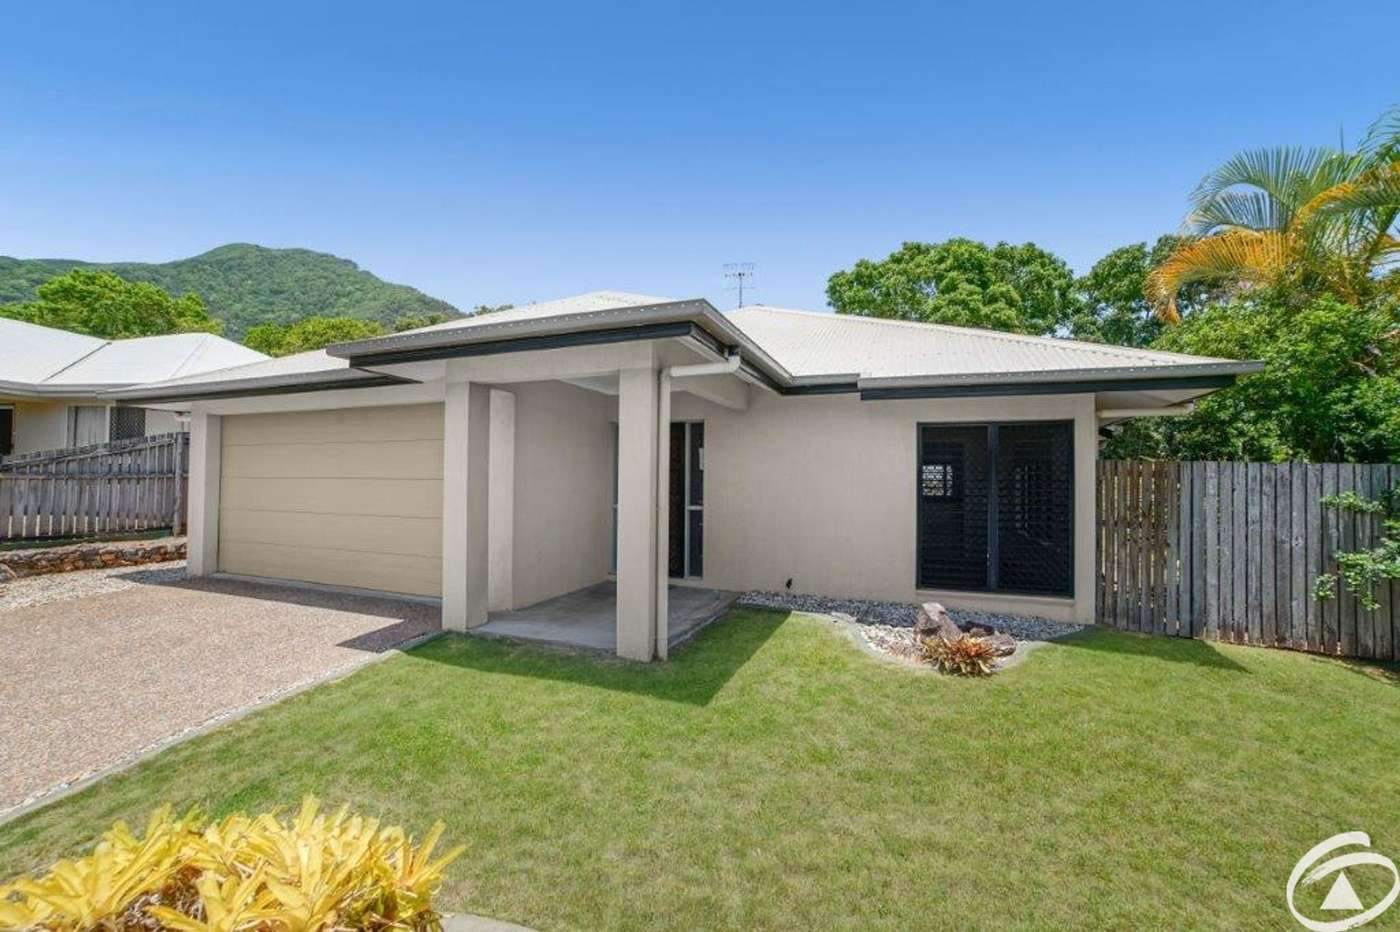 Main view of Homely house listing, 7 Tradewinds Close, Redlynch, QLD 4870